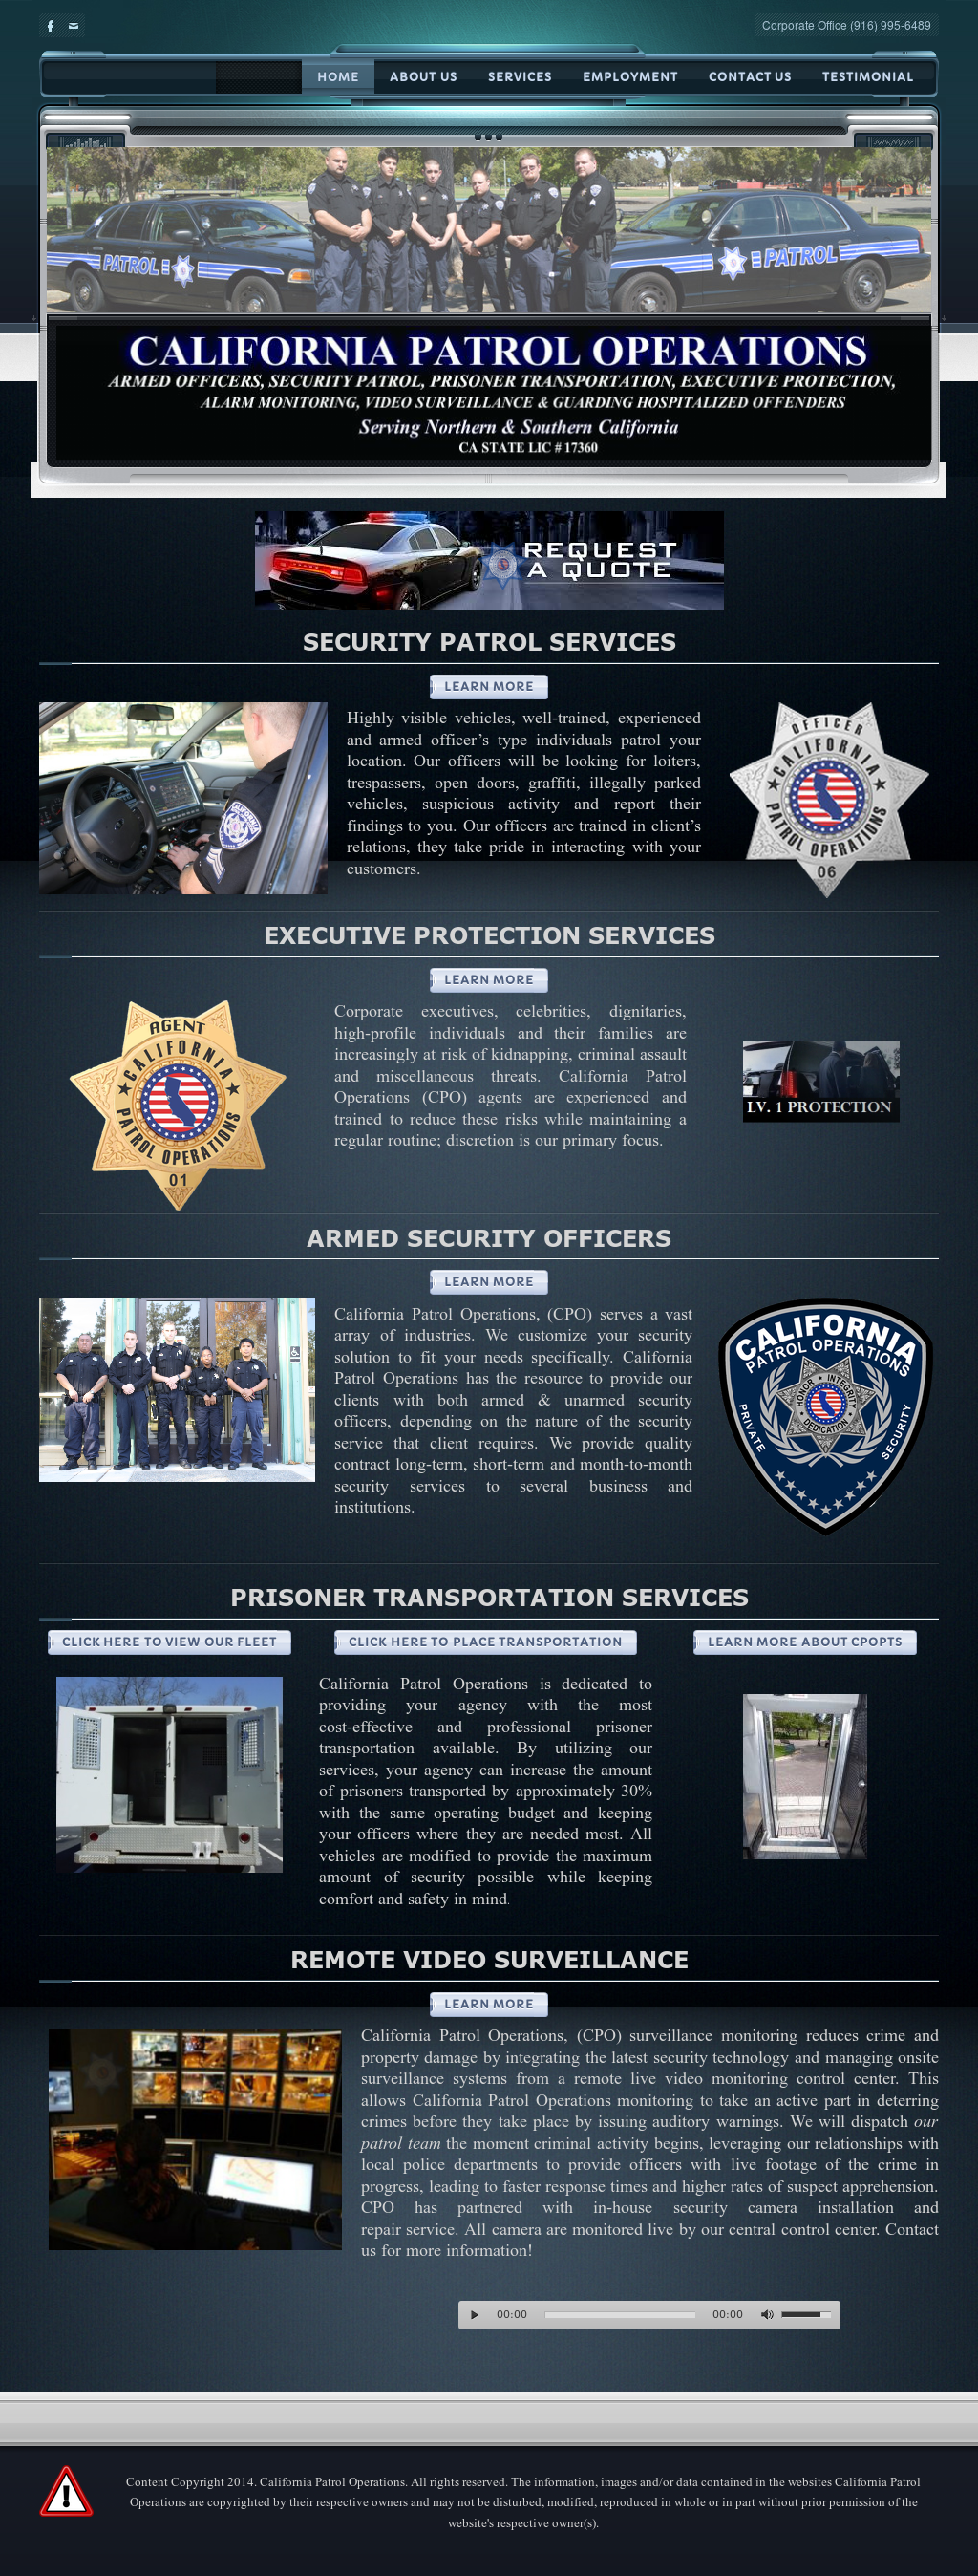 California Patrol Operations Competitors, Revenue and Employees